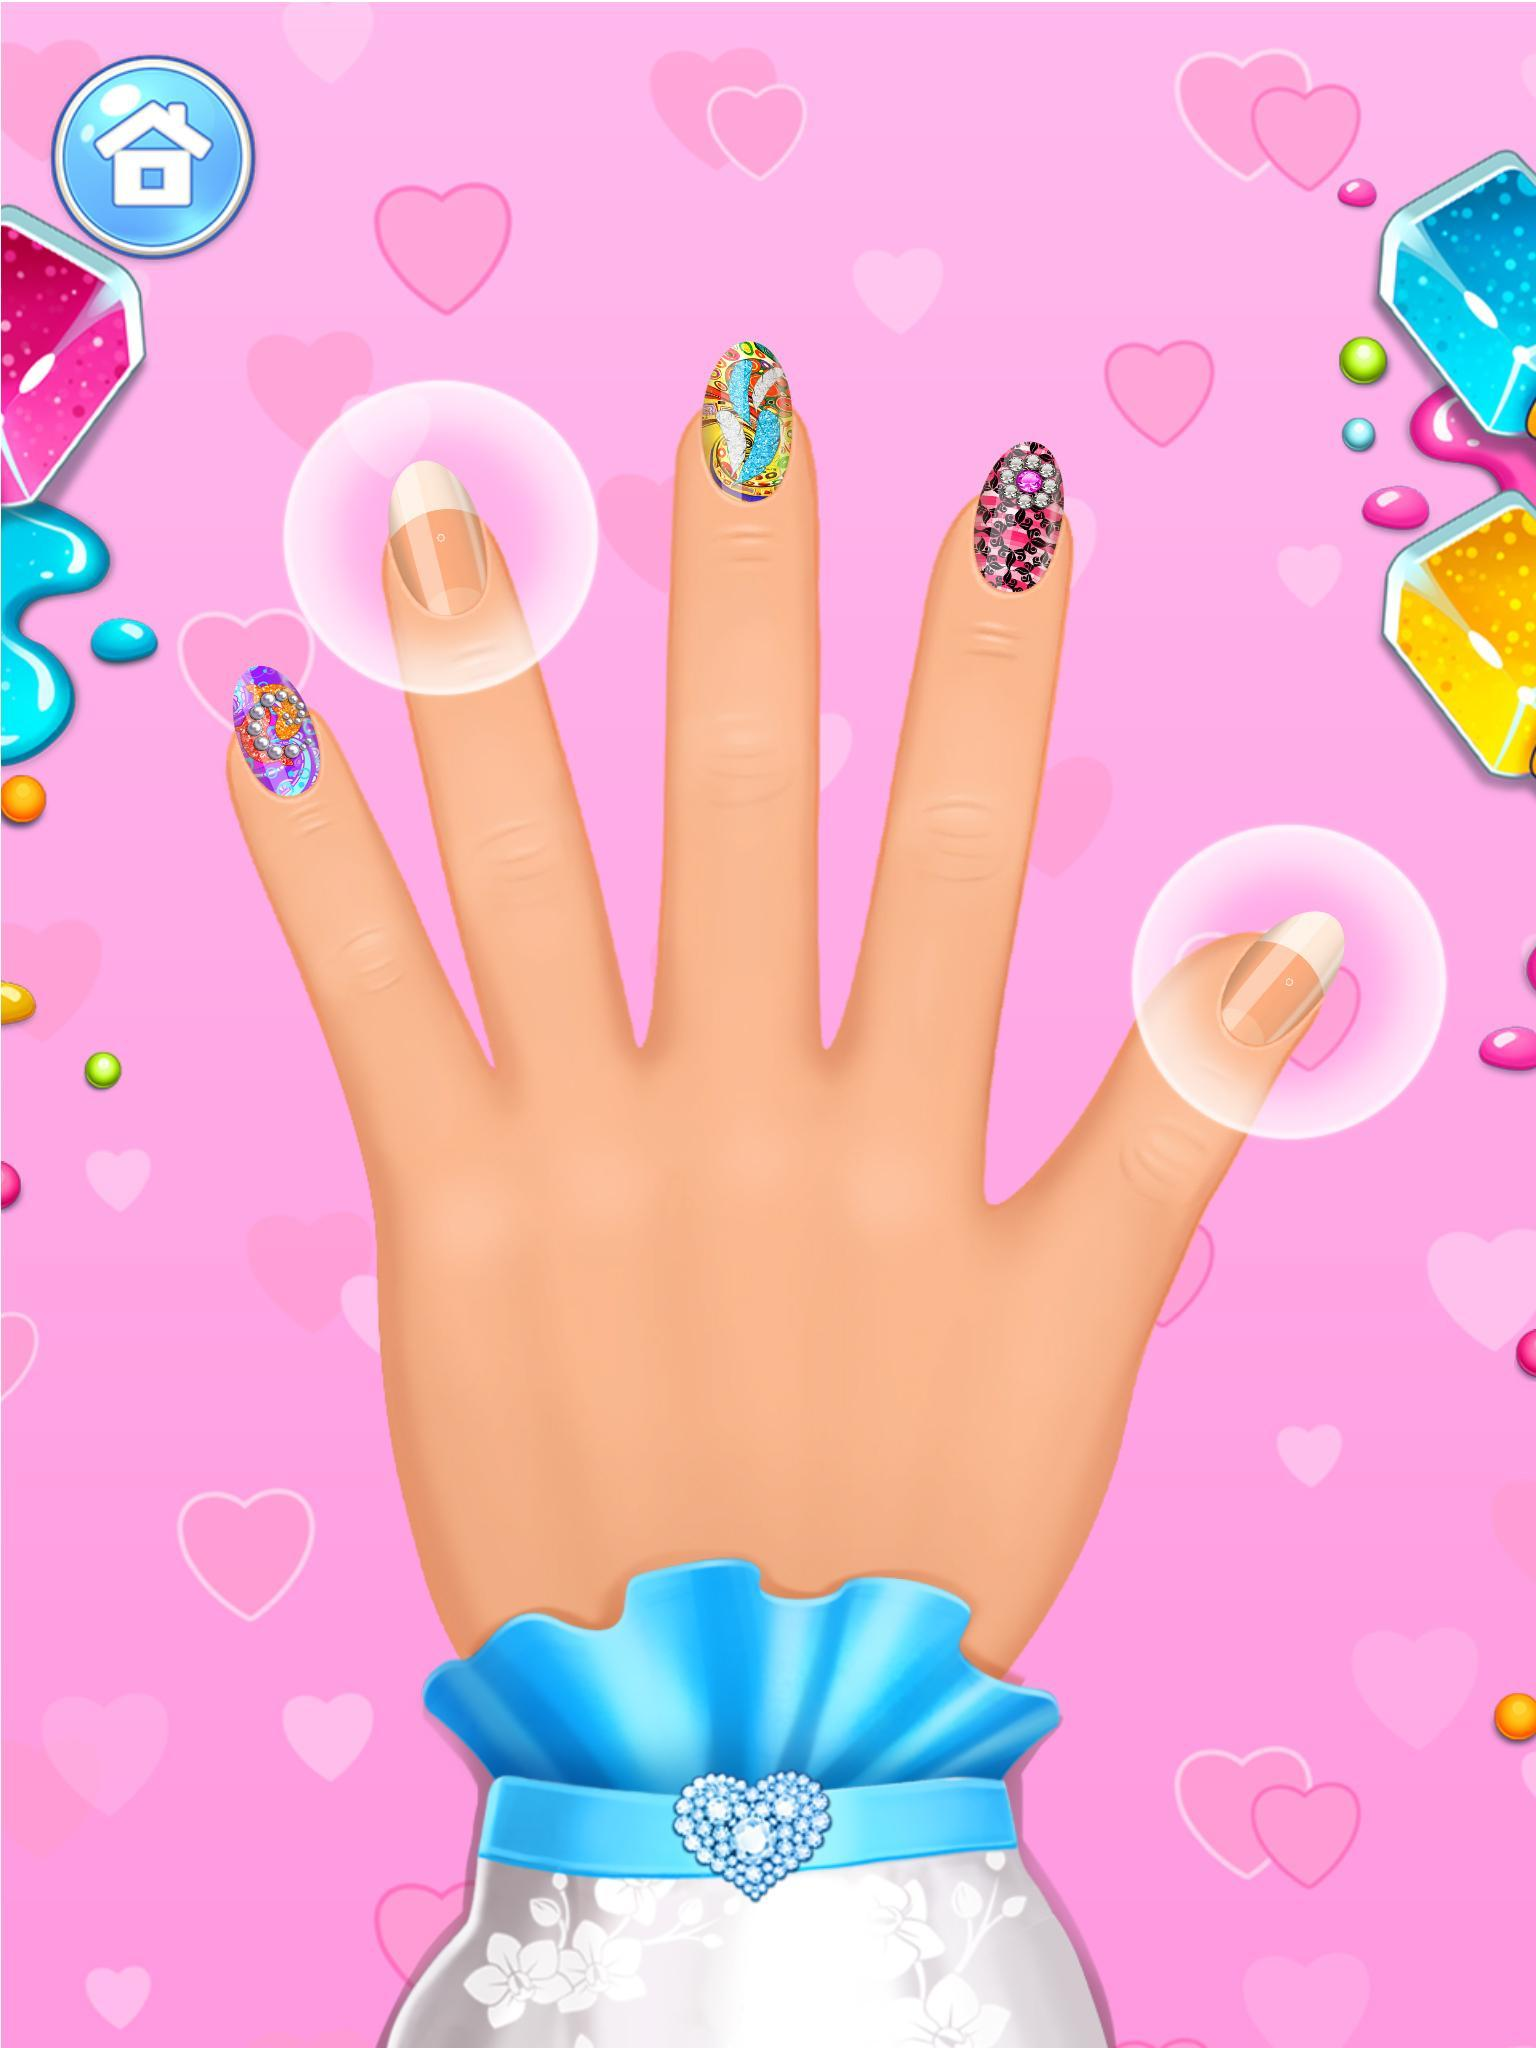 Kids nail salon for Android - APK Download